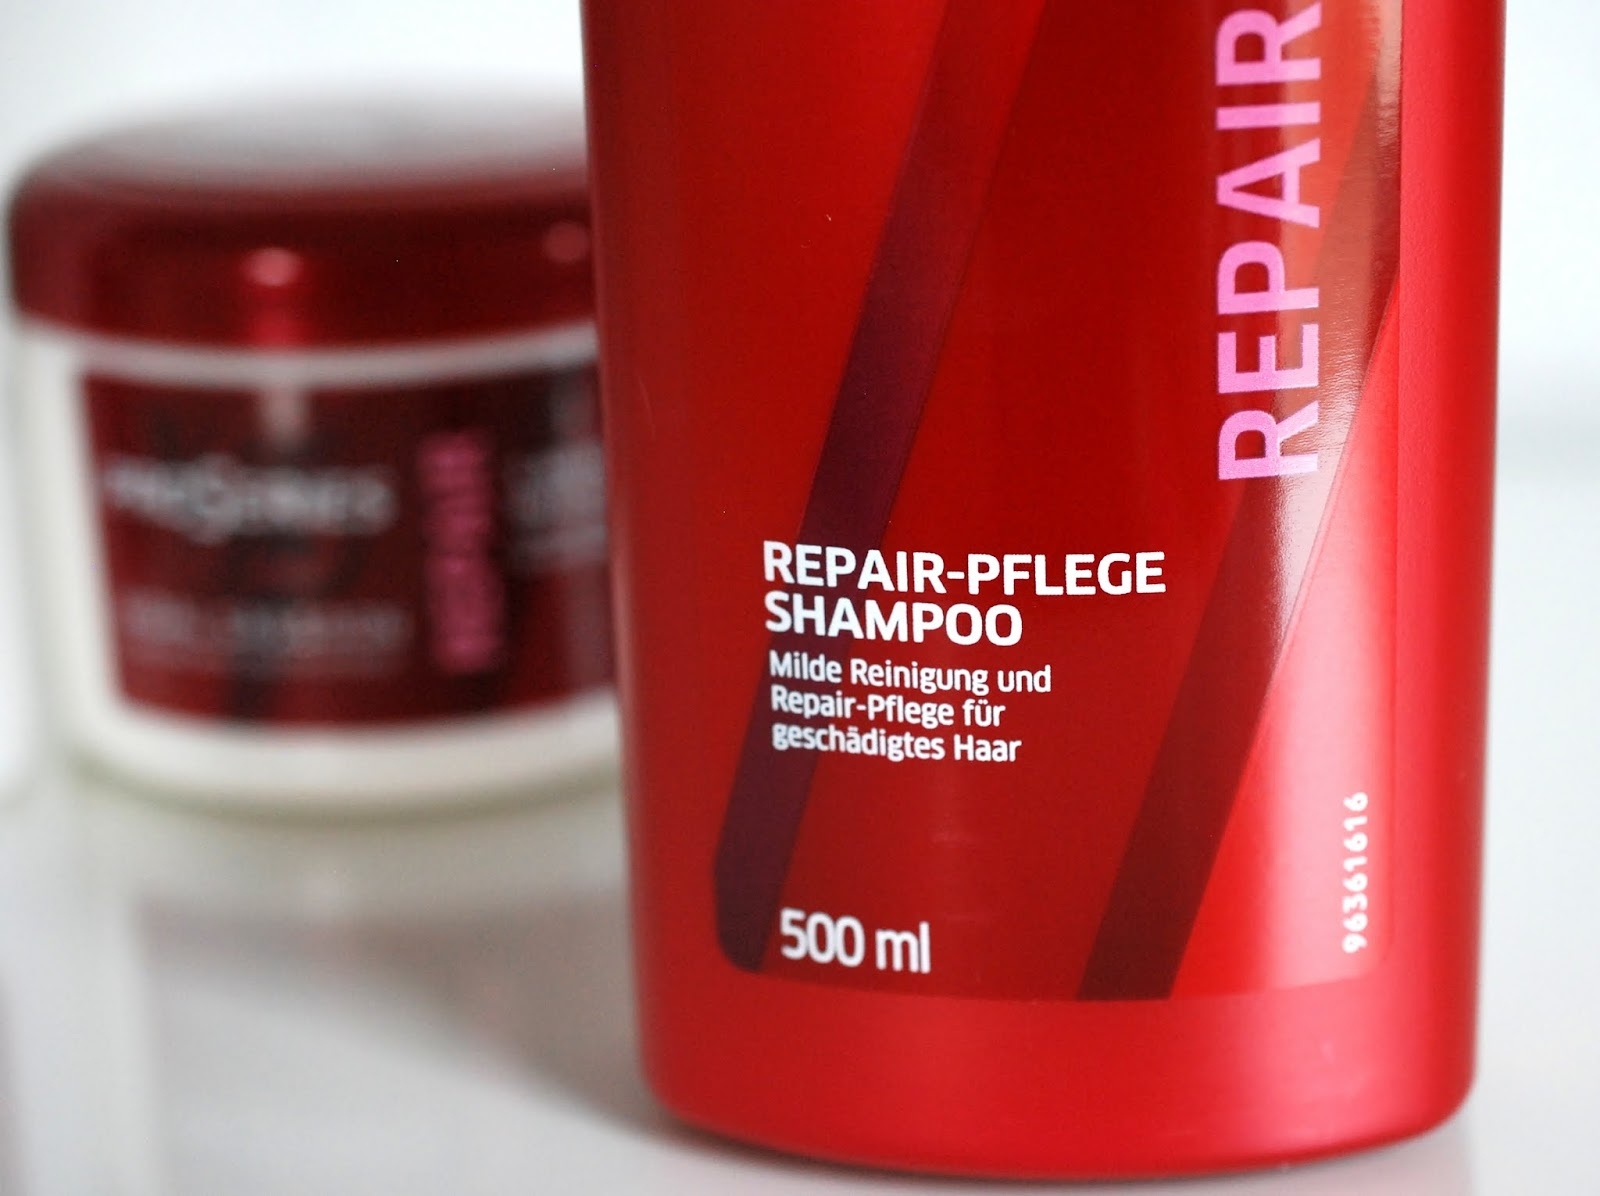 Vidal Sassoon Pro Series Repair-Pflege Shampoo Review